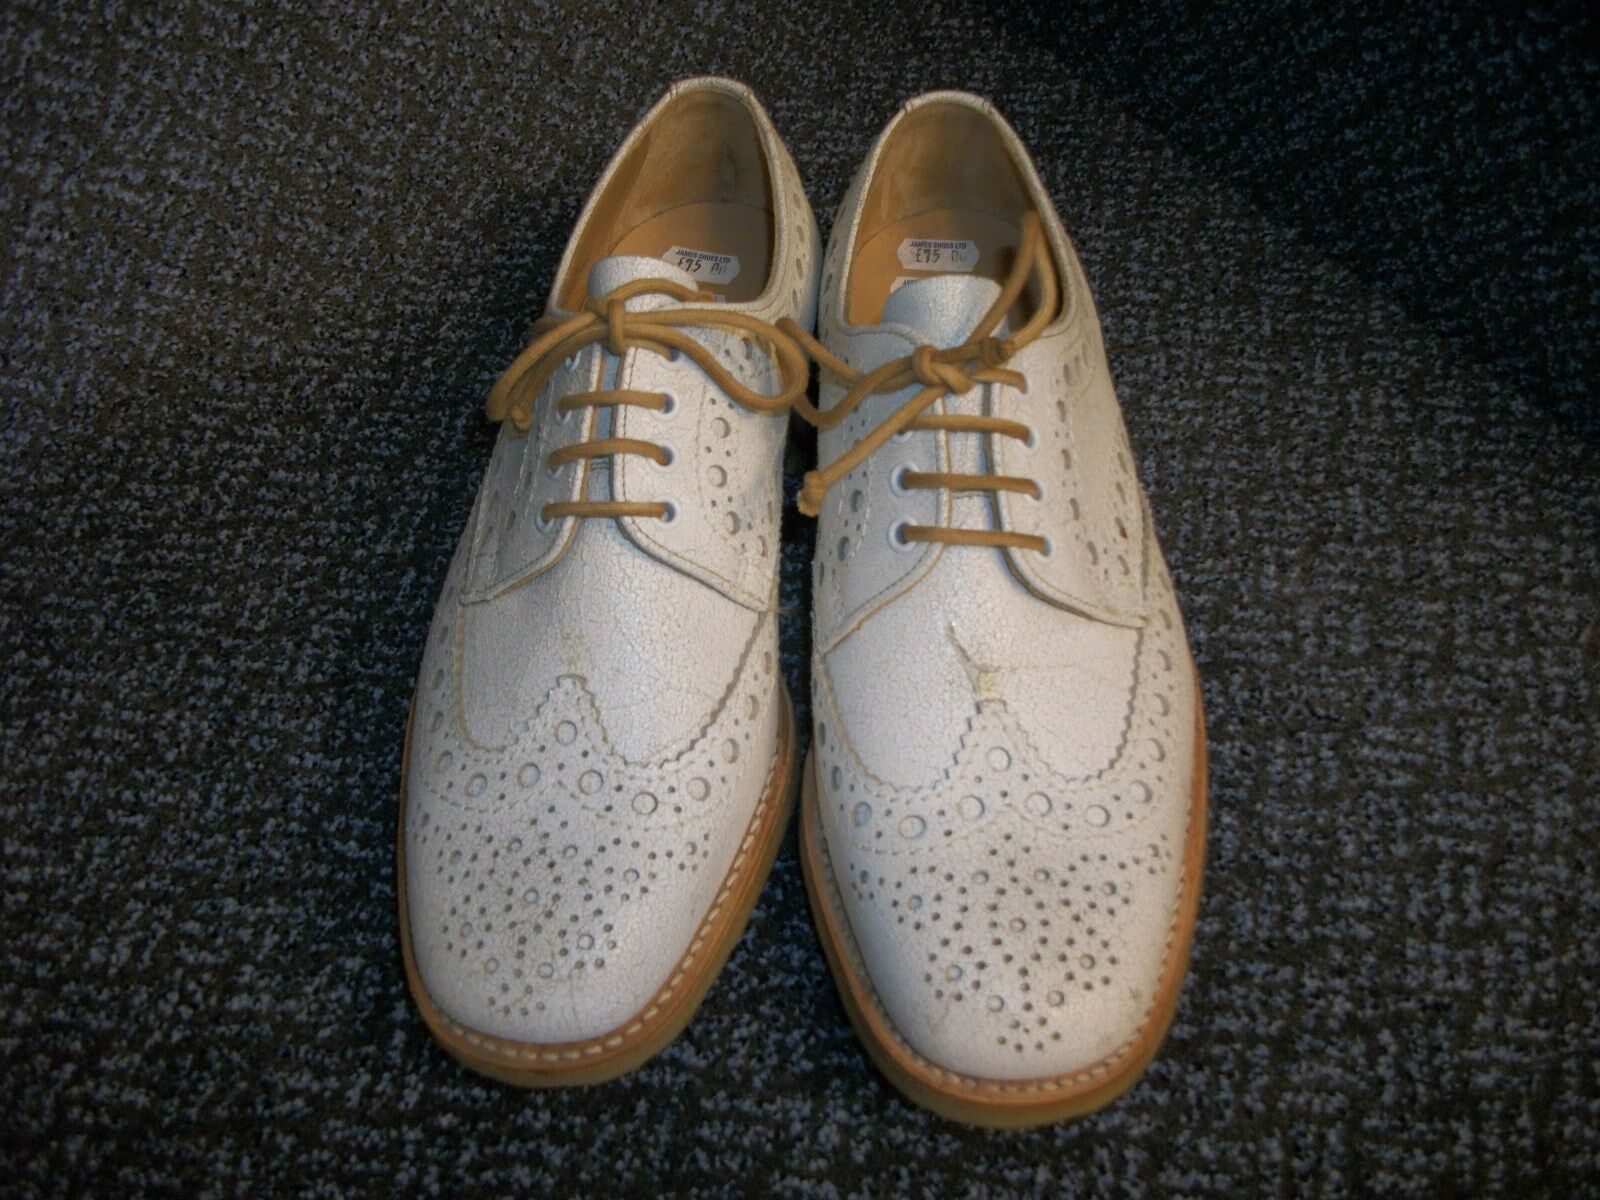 MEN'S SIZE 7 WHITE BROGUES (G FITTING)